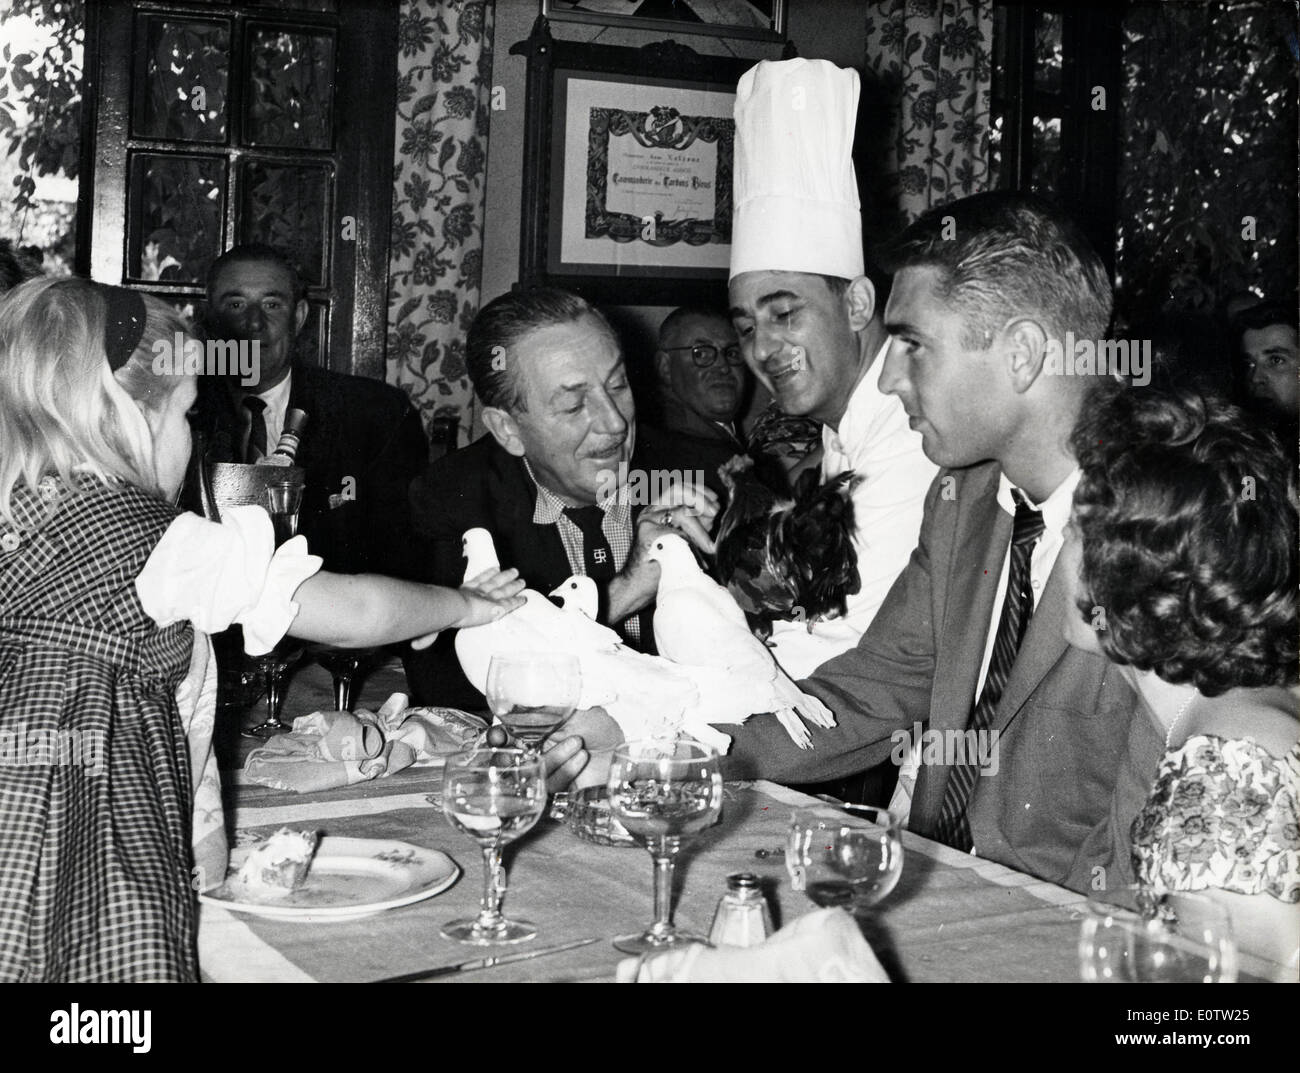 Walt Disney having a meal with friends and live animals Stock Photo